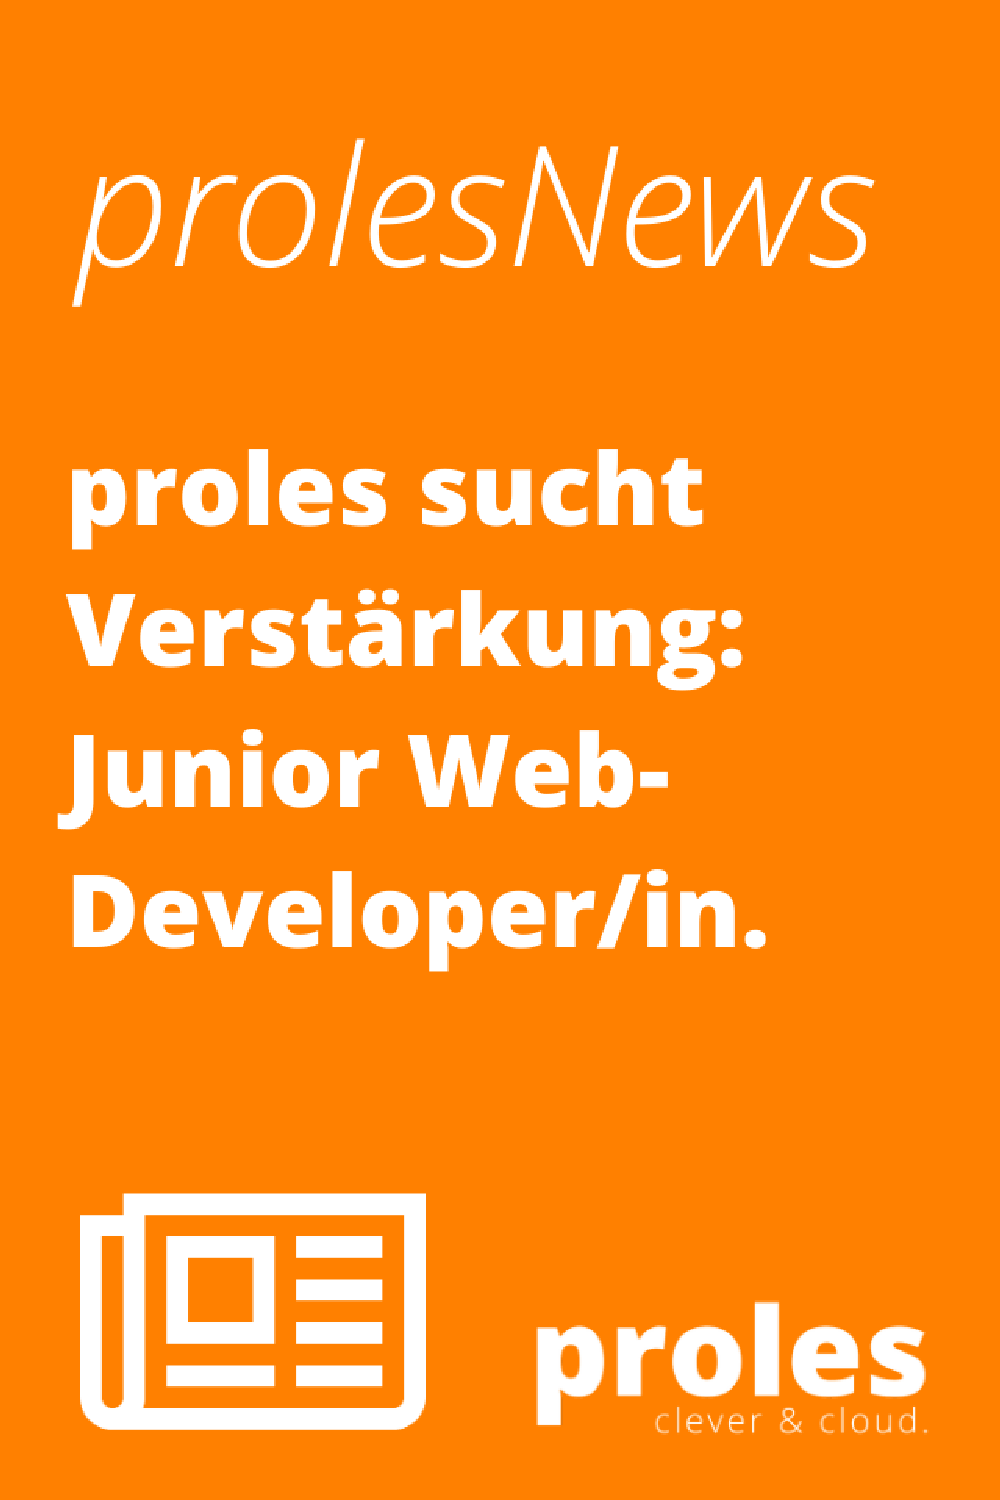 proles sucht Verstärkung - Junior Web-Developer/in Backend/Frontend [100%]